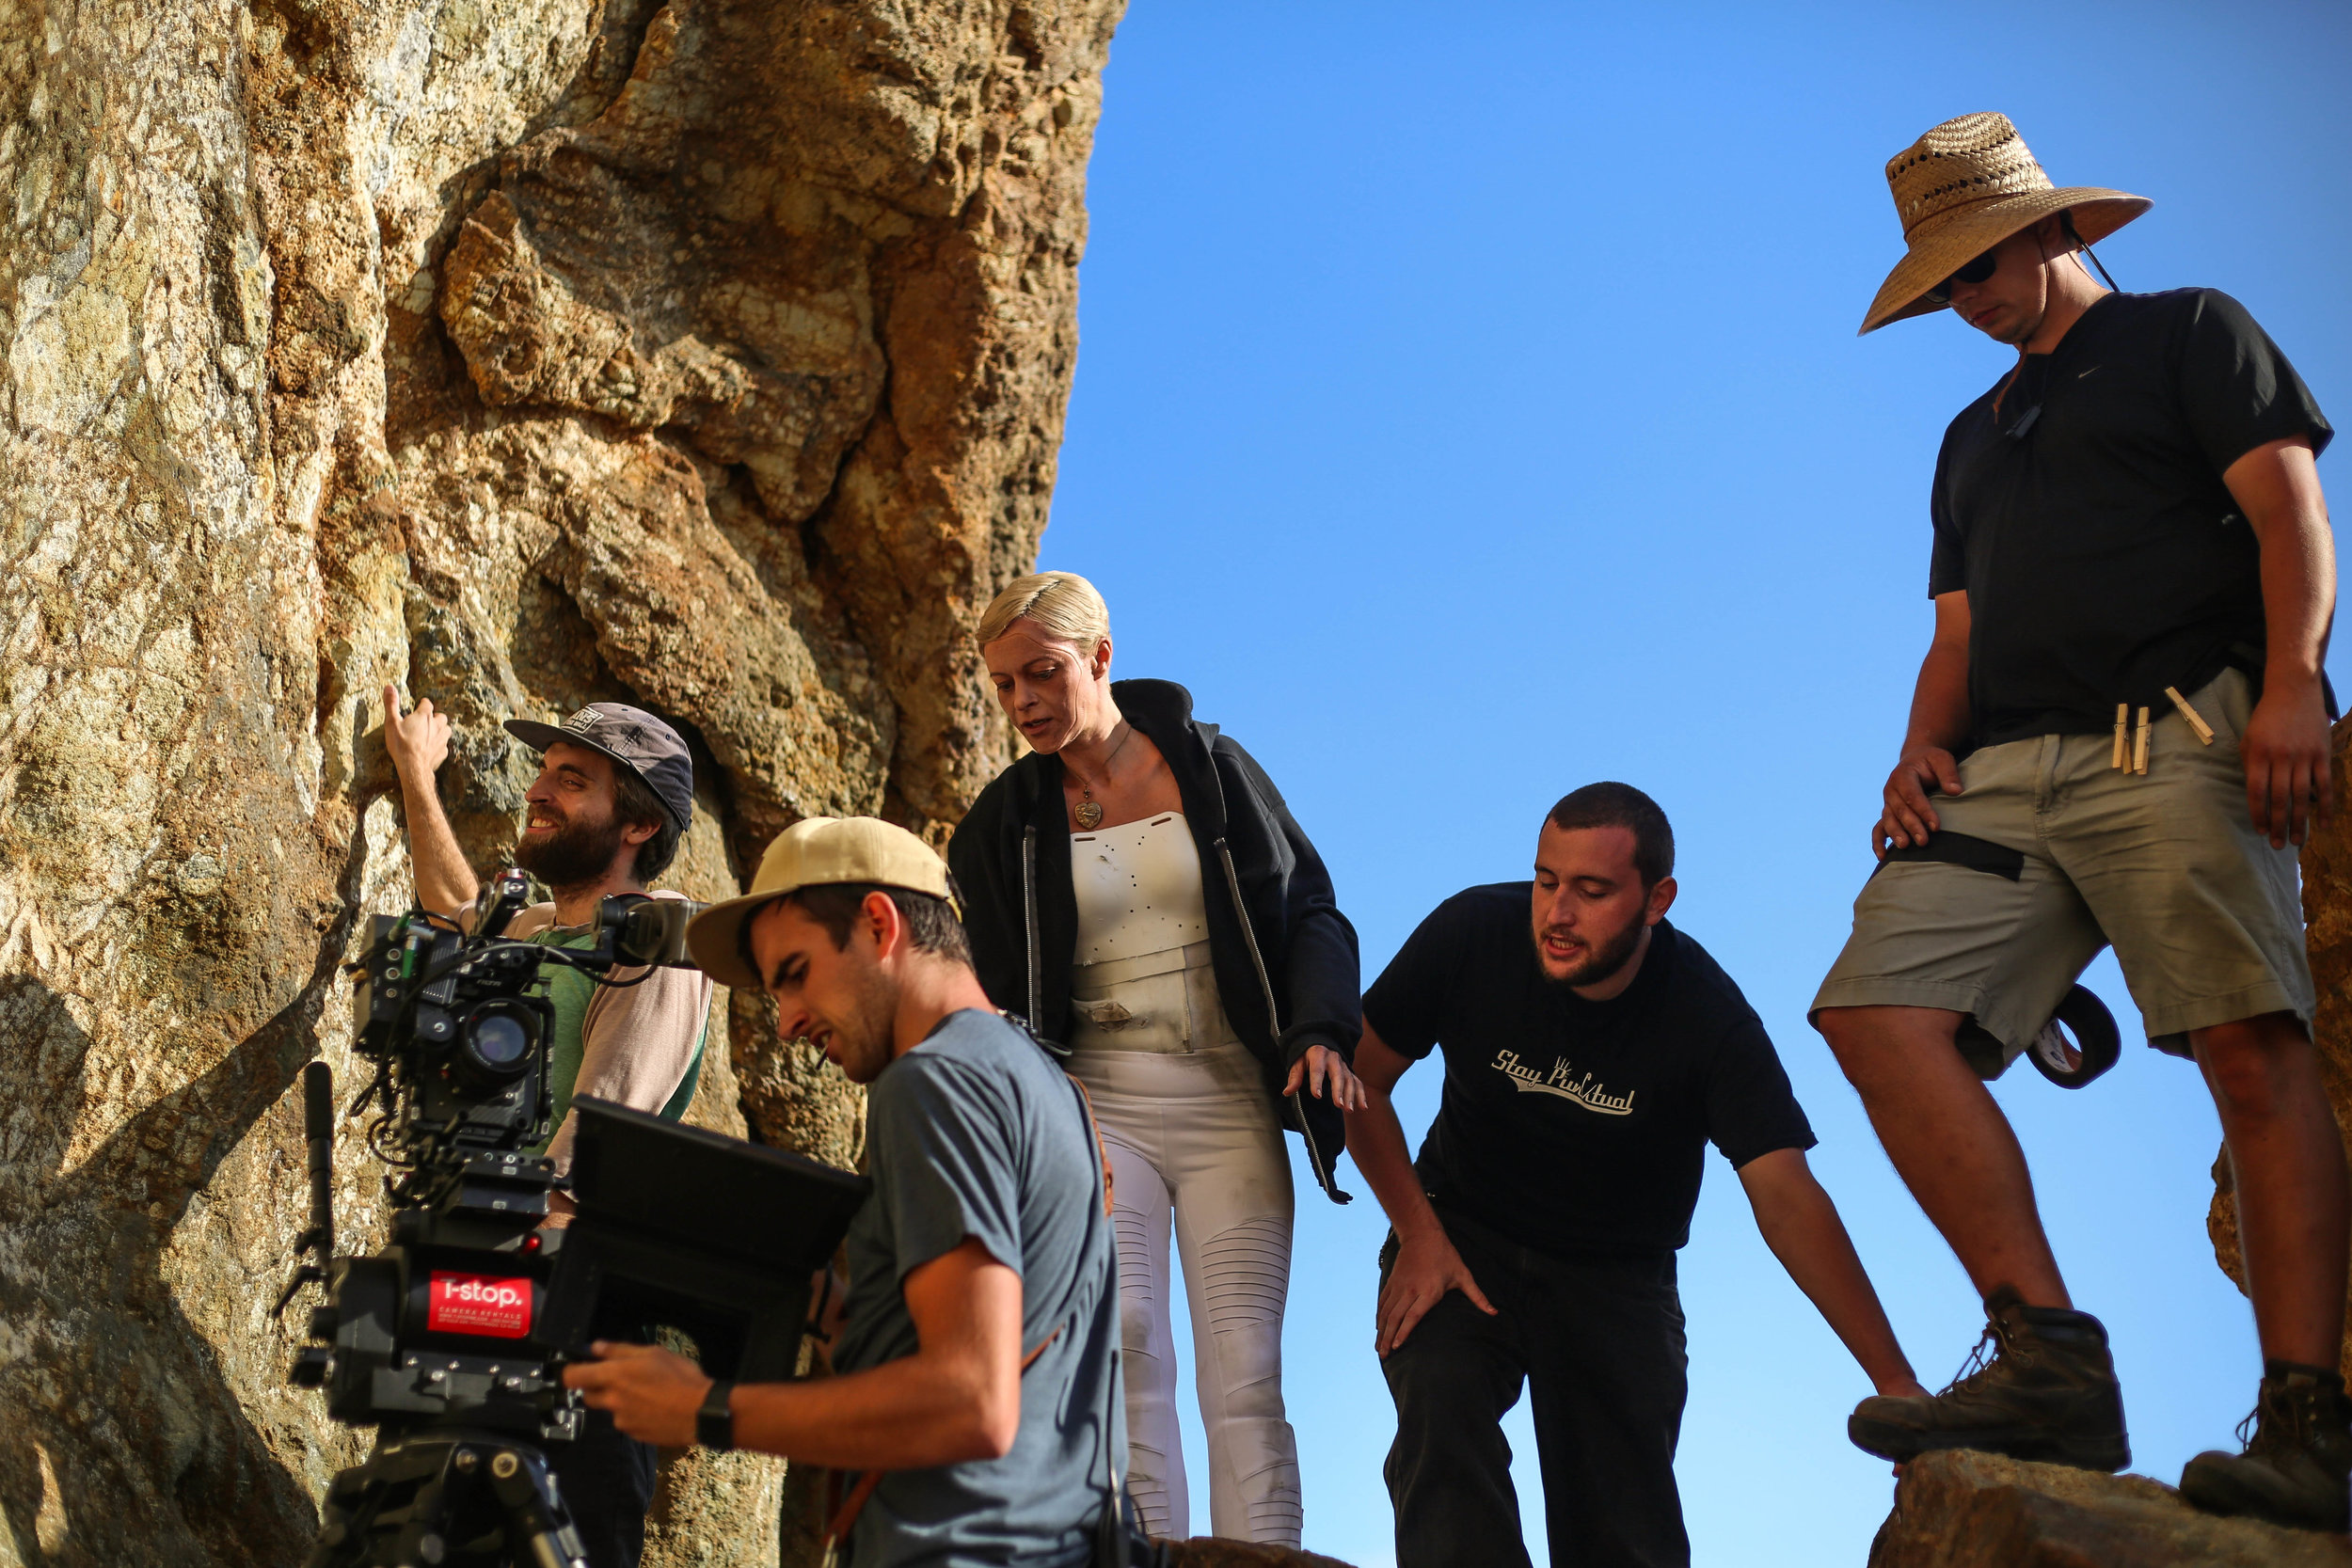 Camera, Grip and stunt crew on set. Photo credit Di Wei.